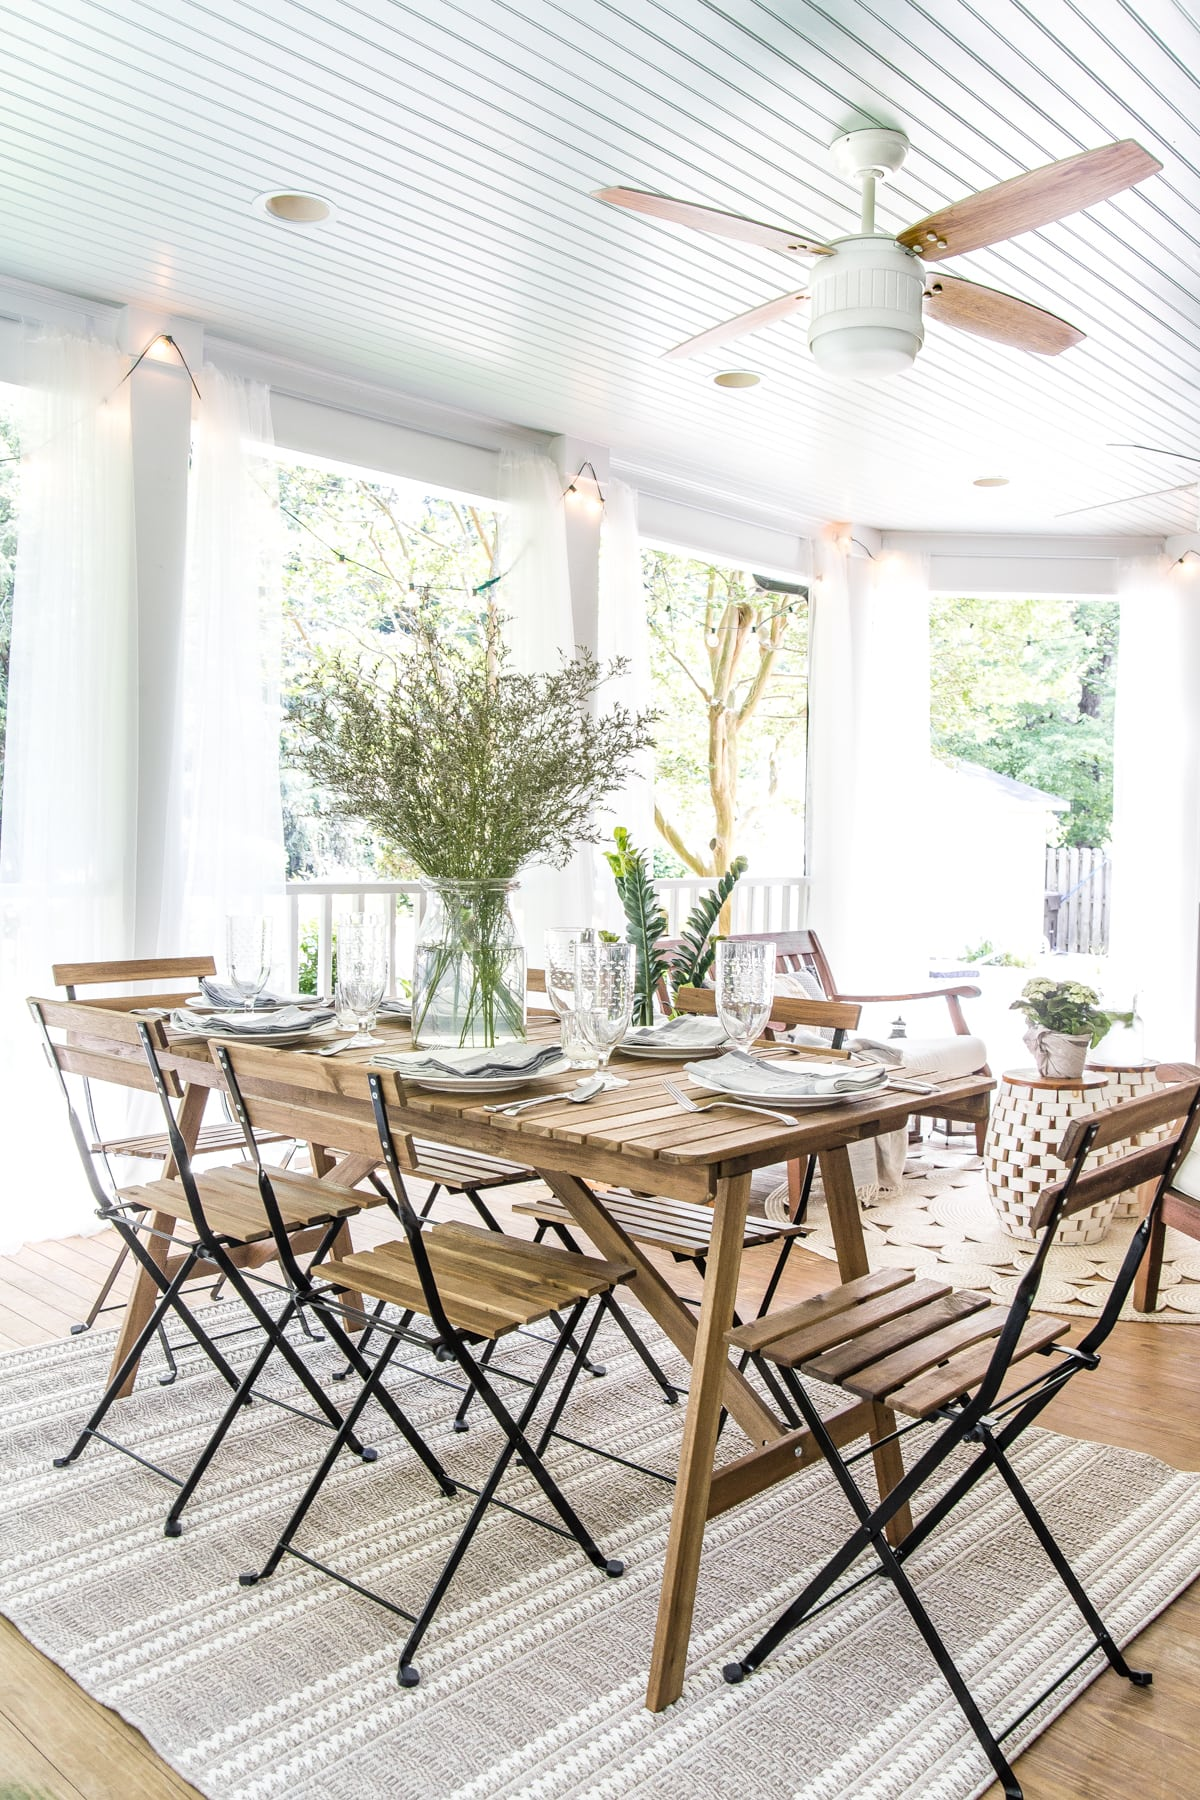 outdoor dining table on back porch with haint blue ceiling and ceiling fan